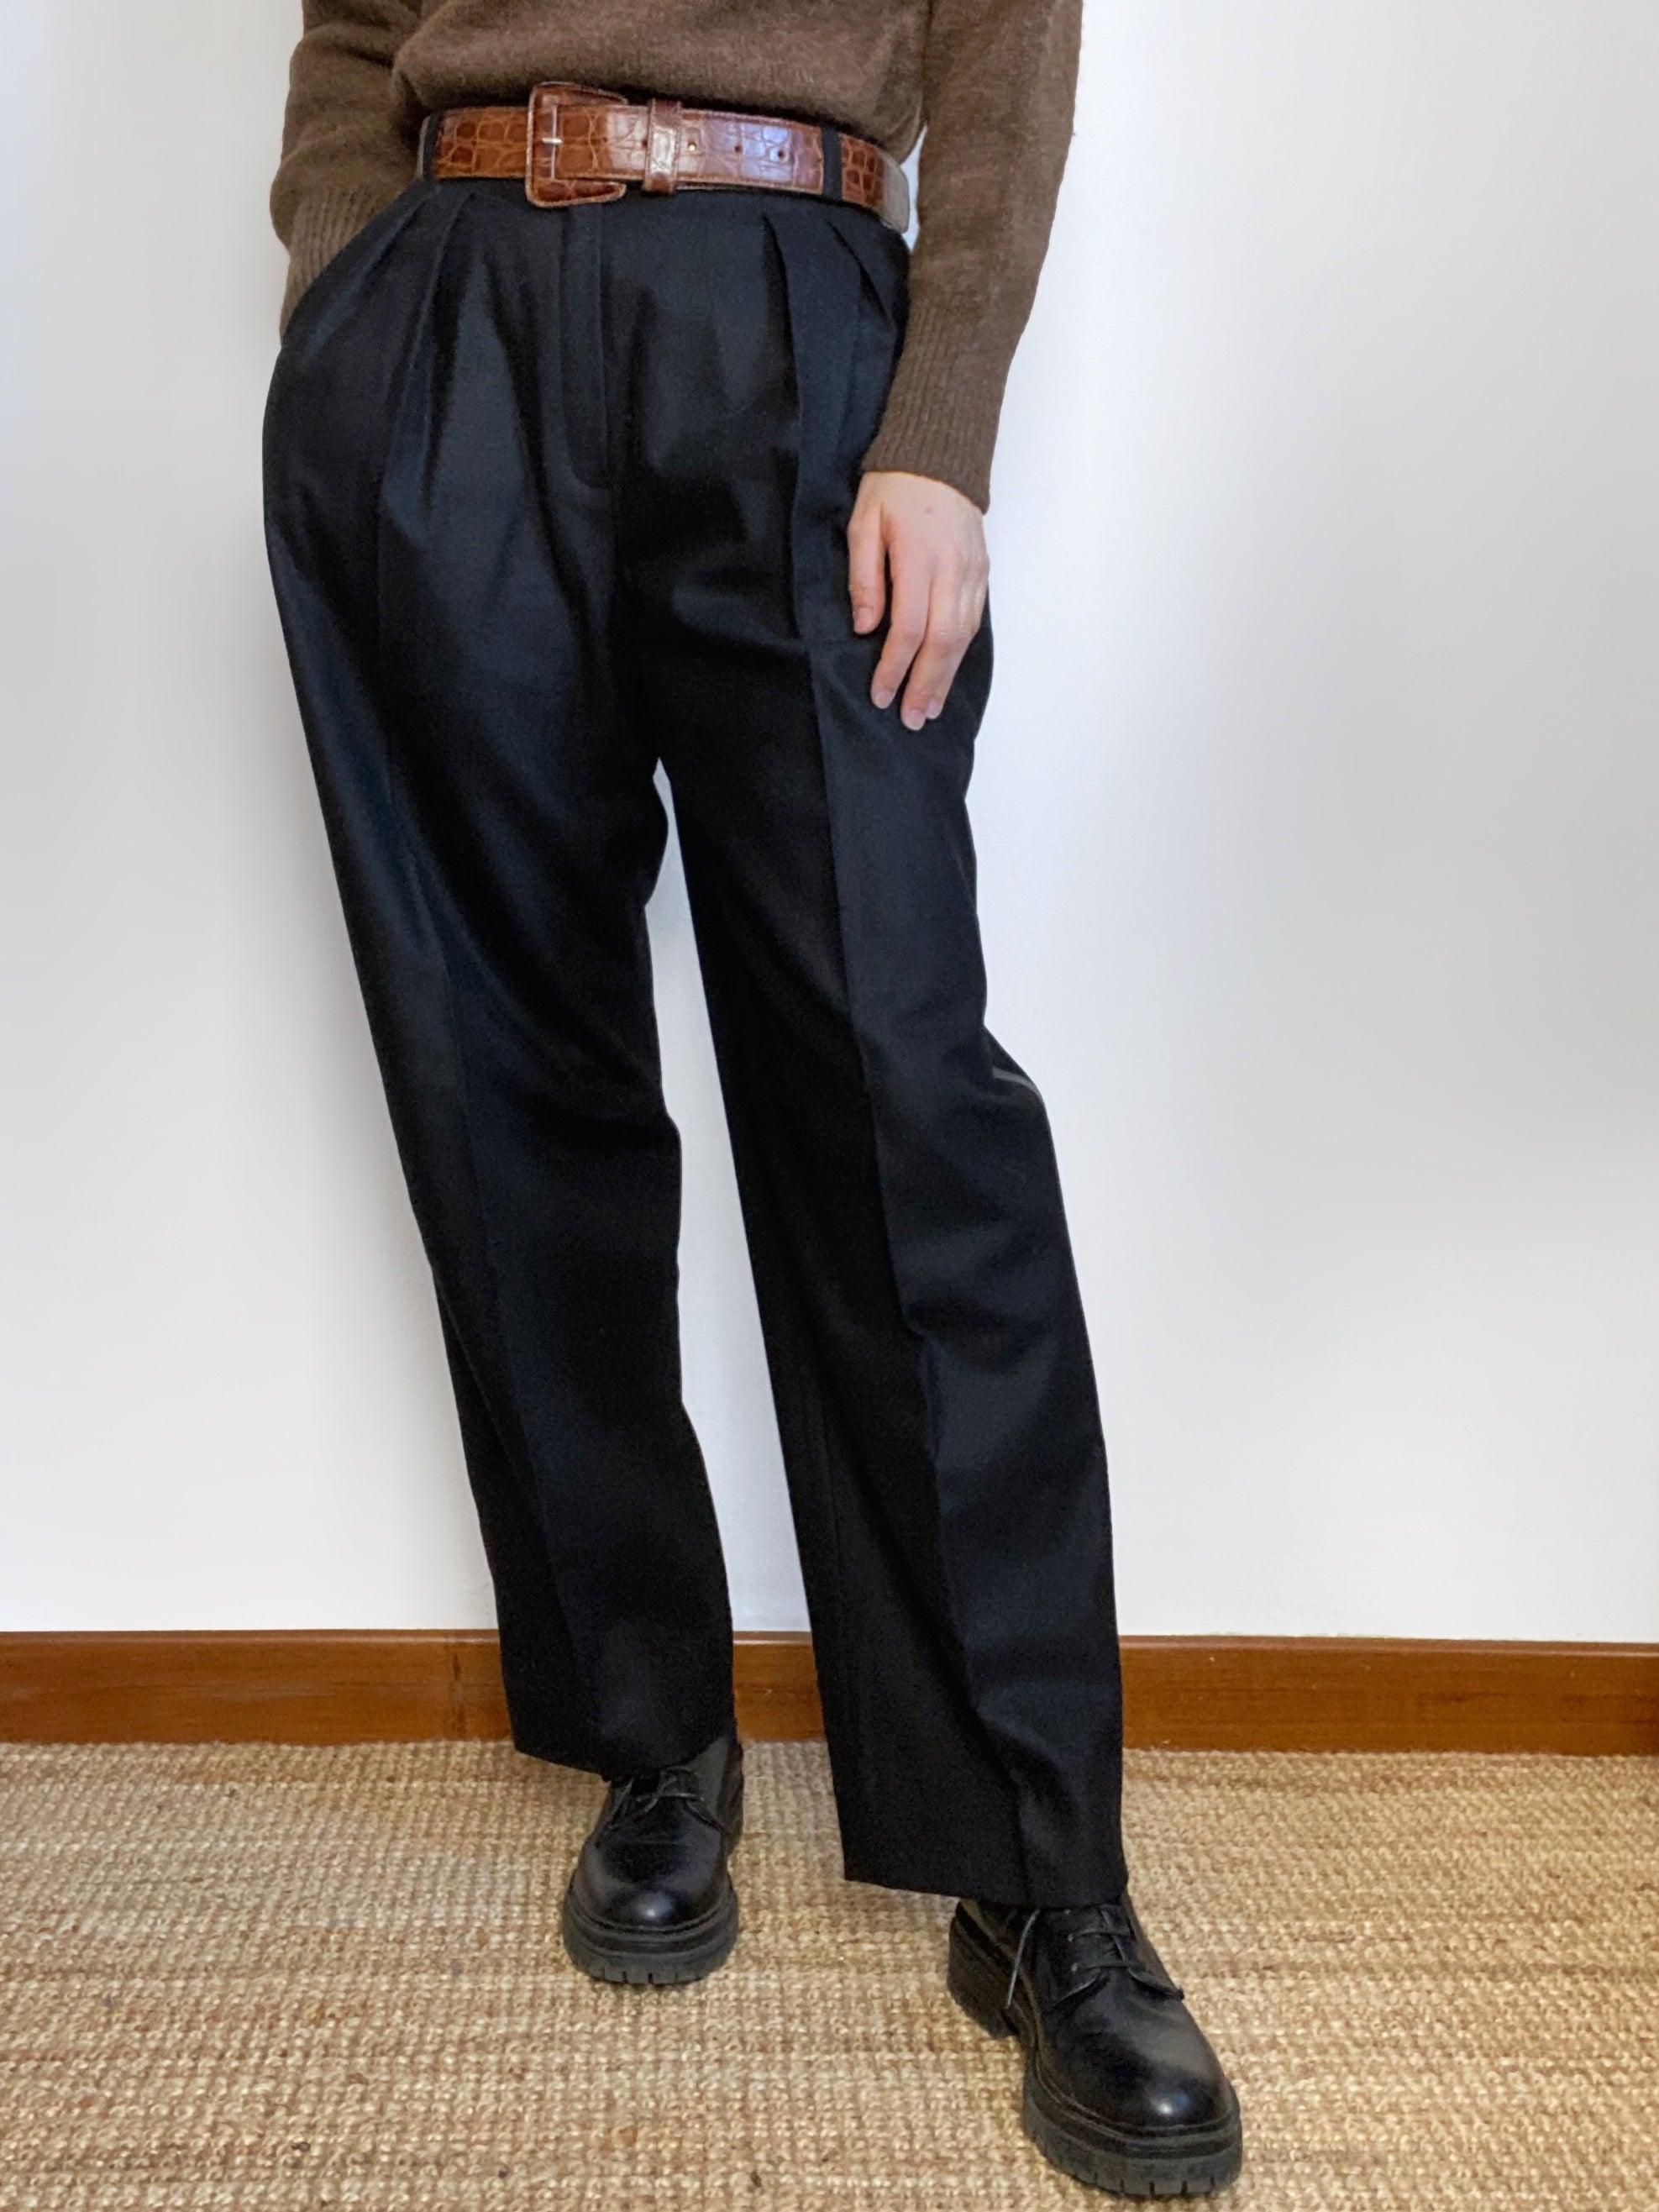 Vintage iBlues wool pants with leather details